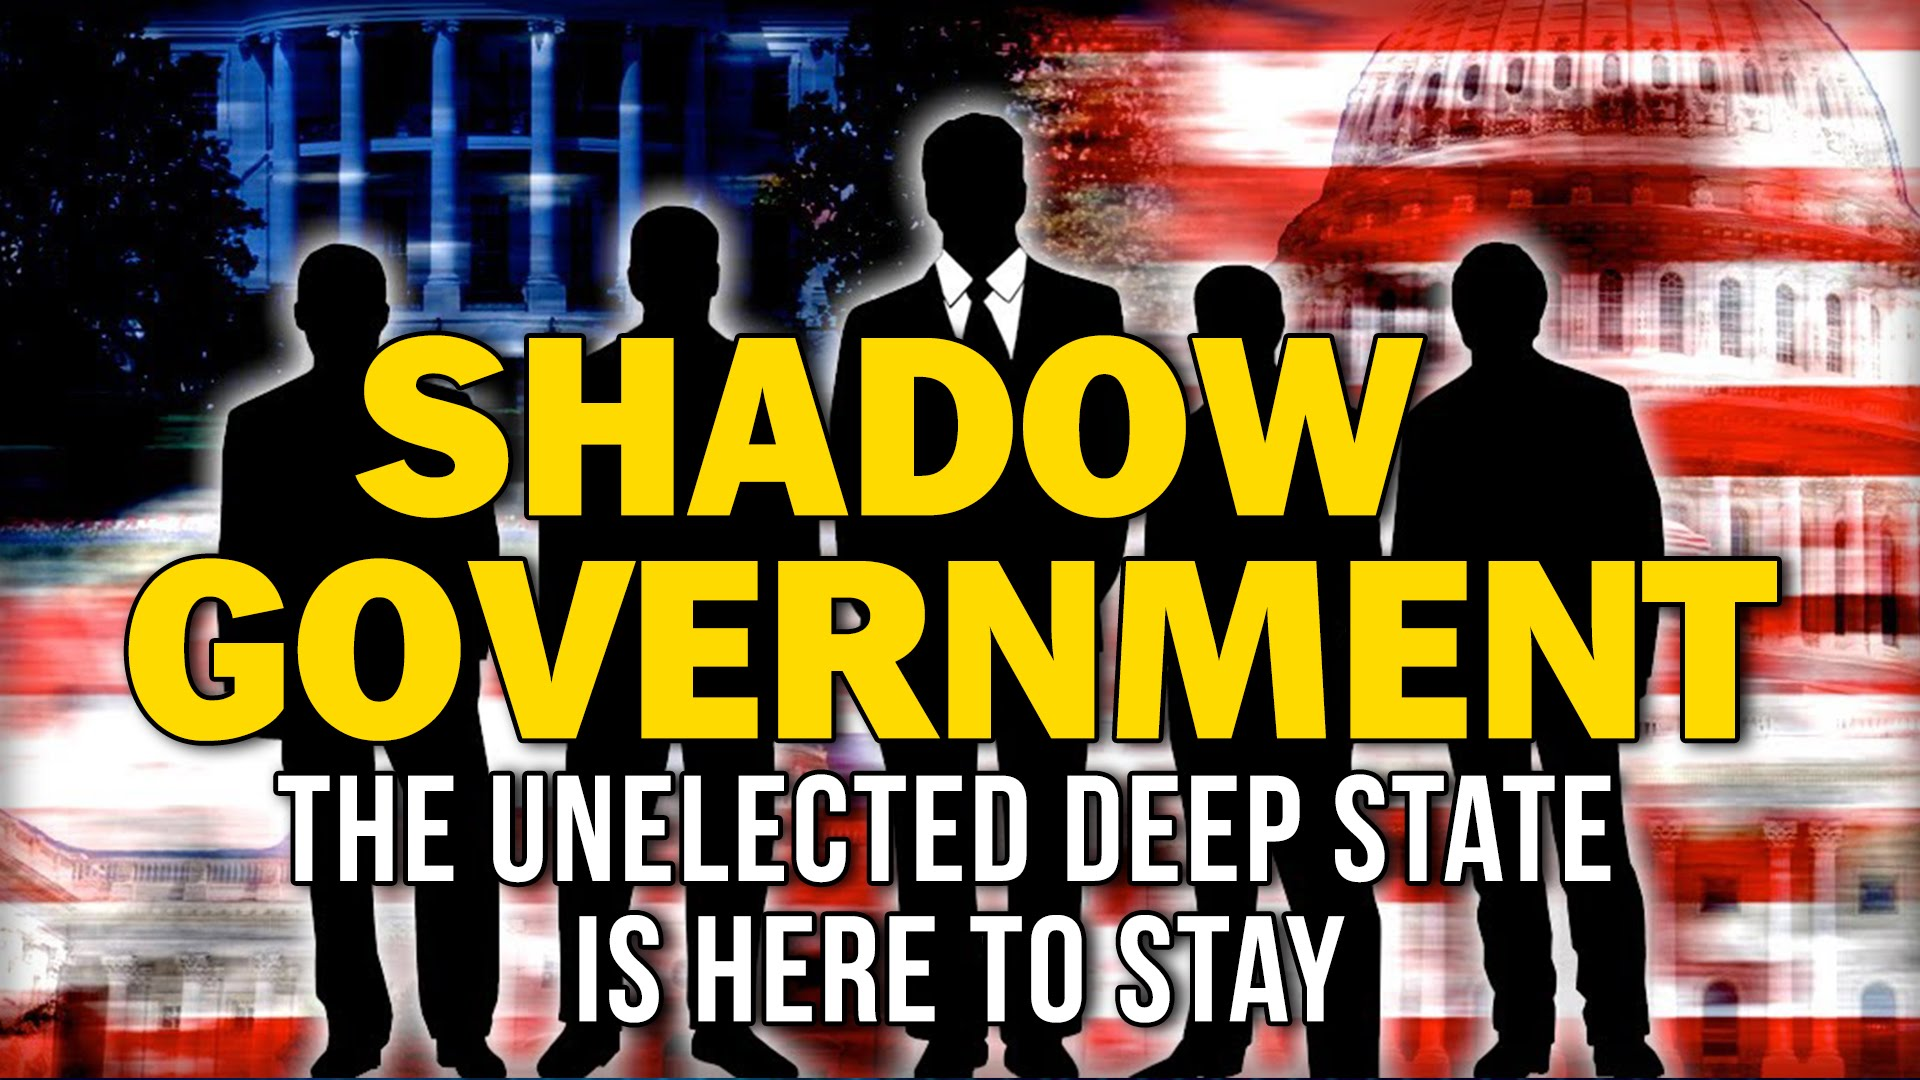 Dismantling the Deep State and NWO! How? When? | Kingdom Economics